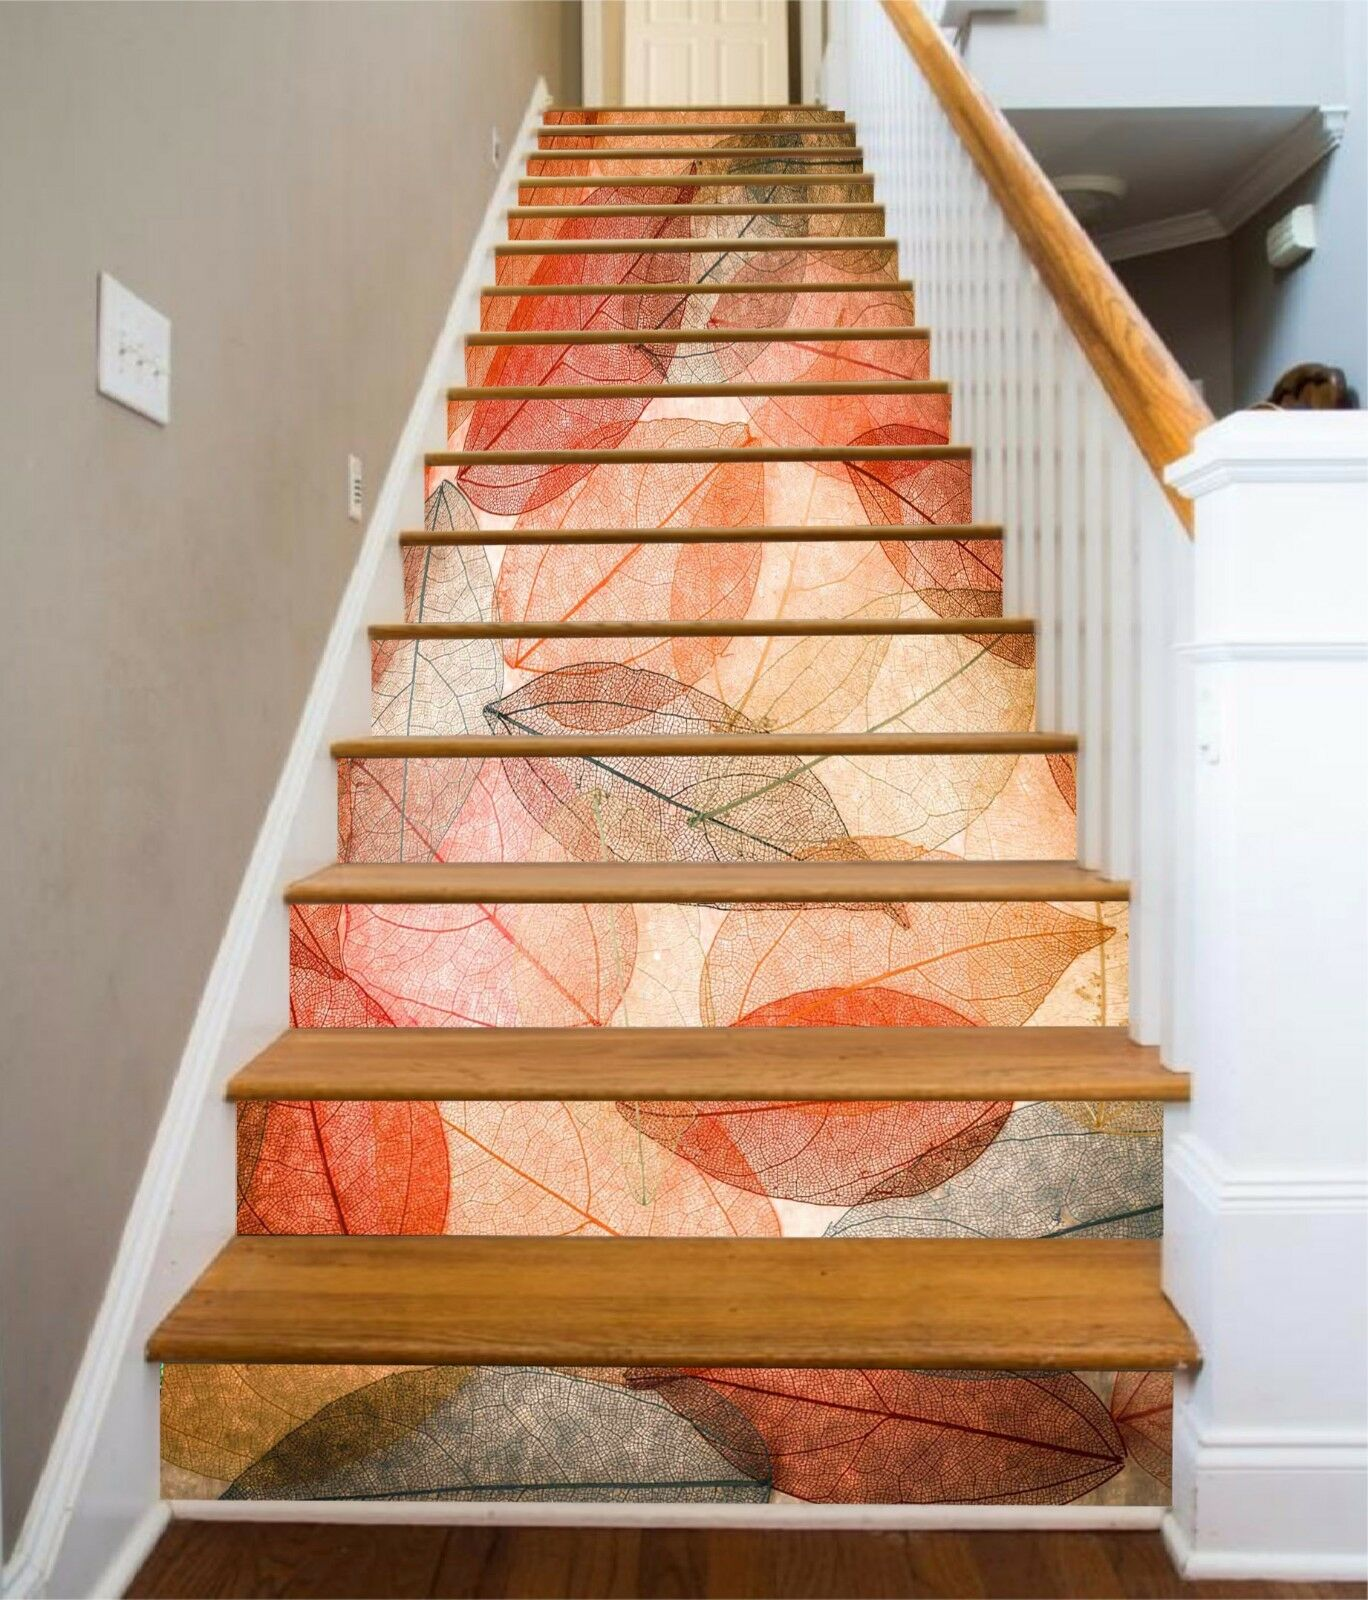 3D 3D 3D ROT leaves 355 Stair Risers Decoration Photo Mural Vinyl Decal Wallpaper UK d98ab4